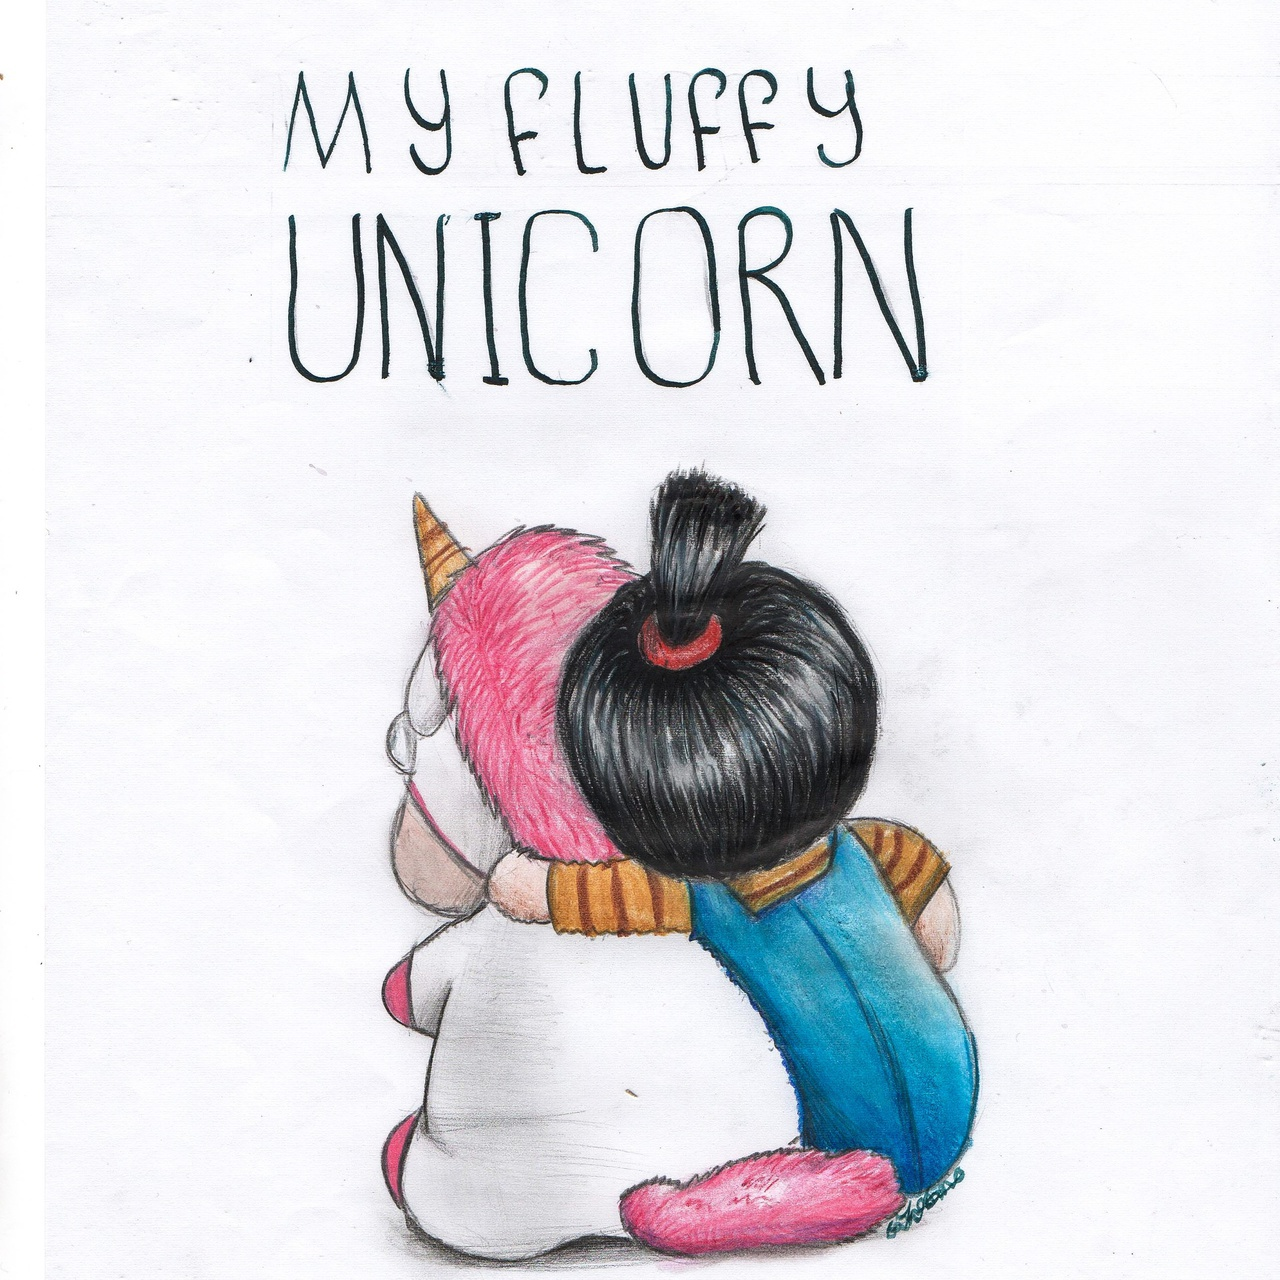 despicable me agnes and unicorn drawing by suzanna